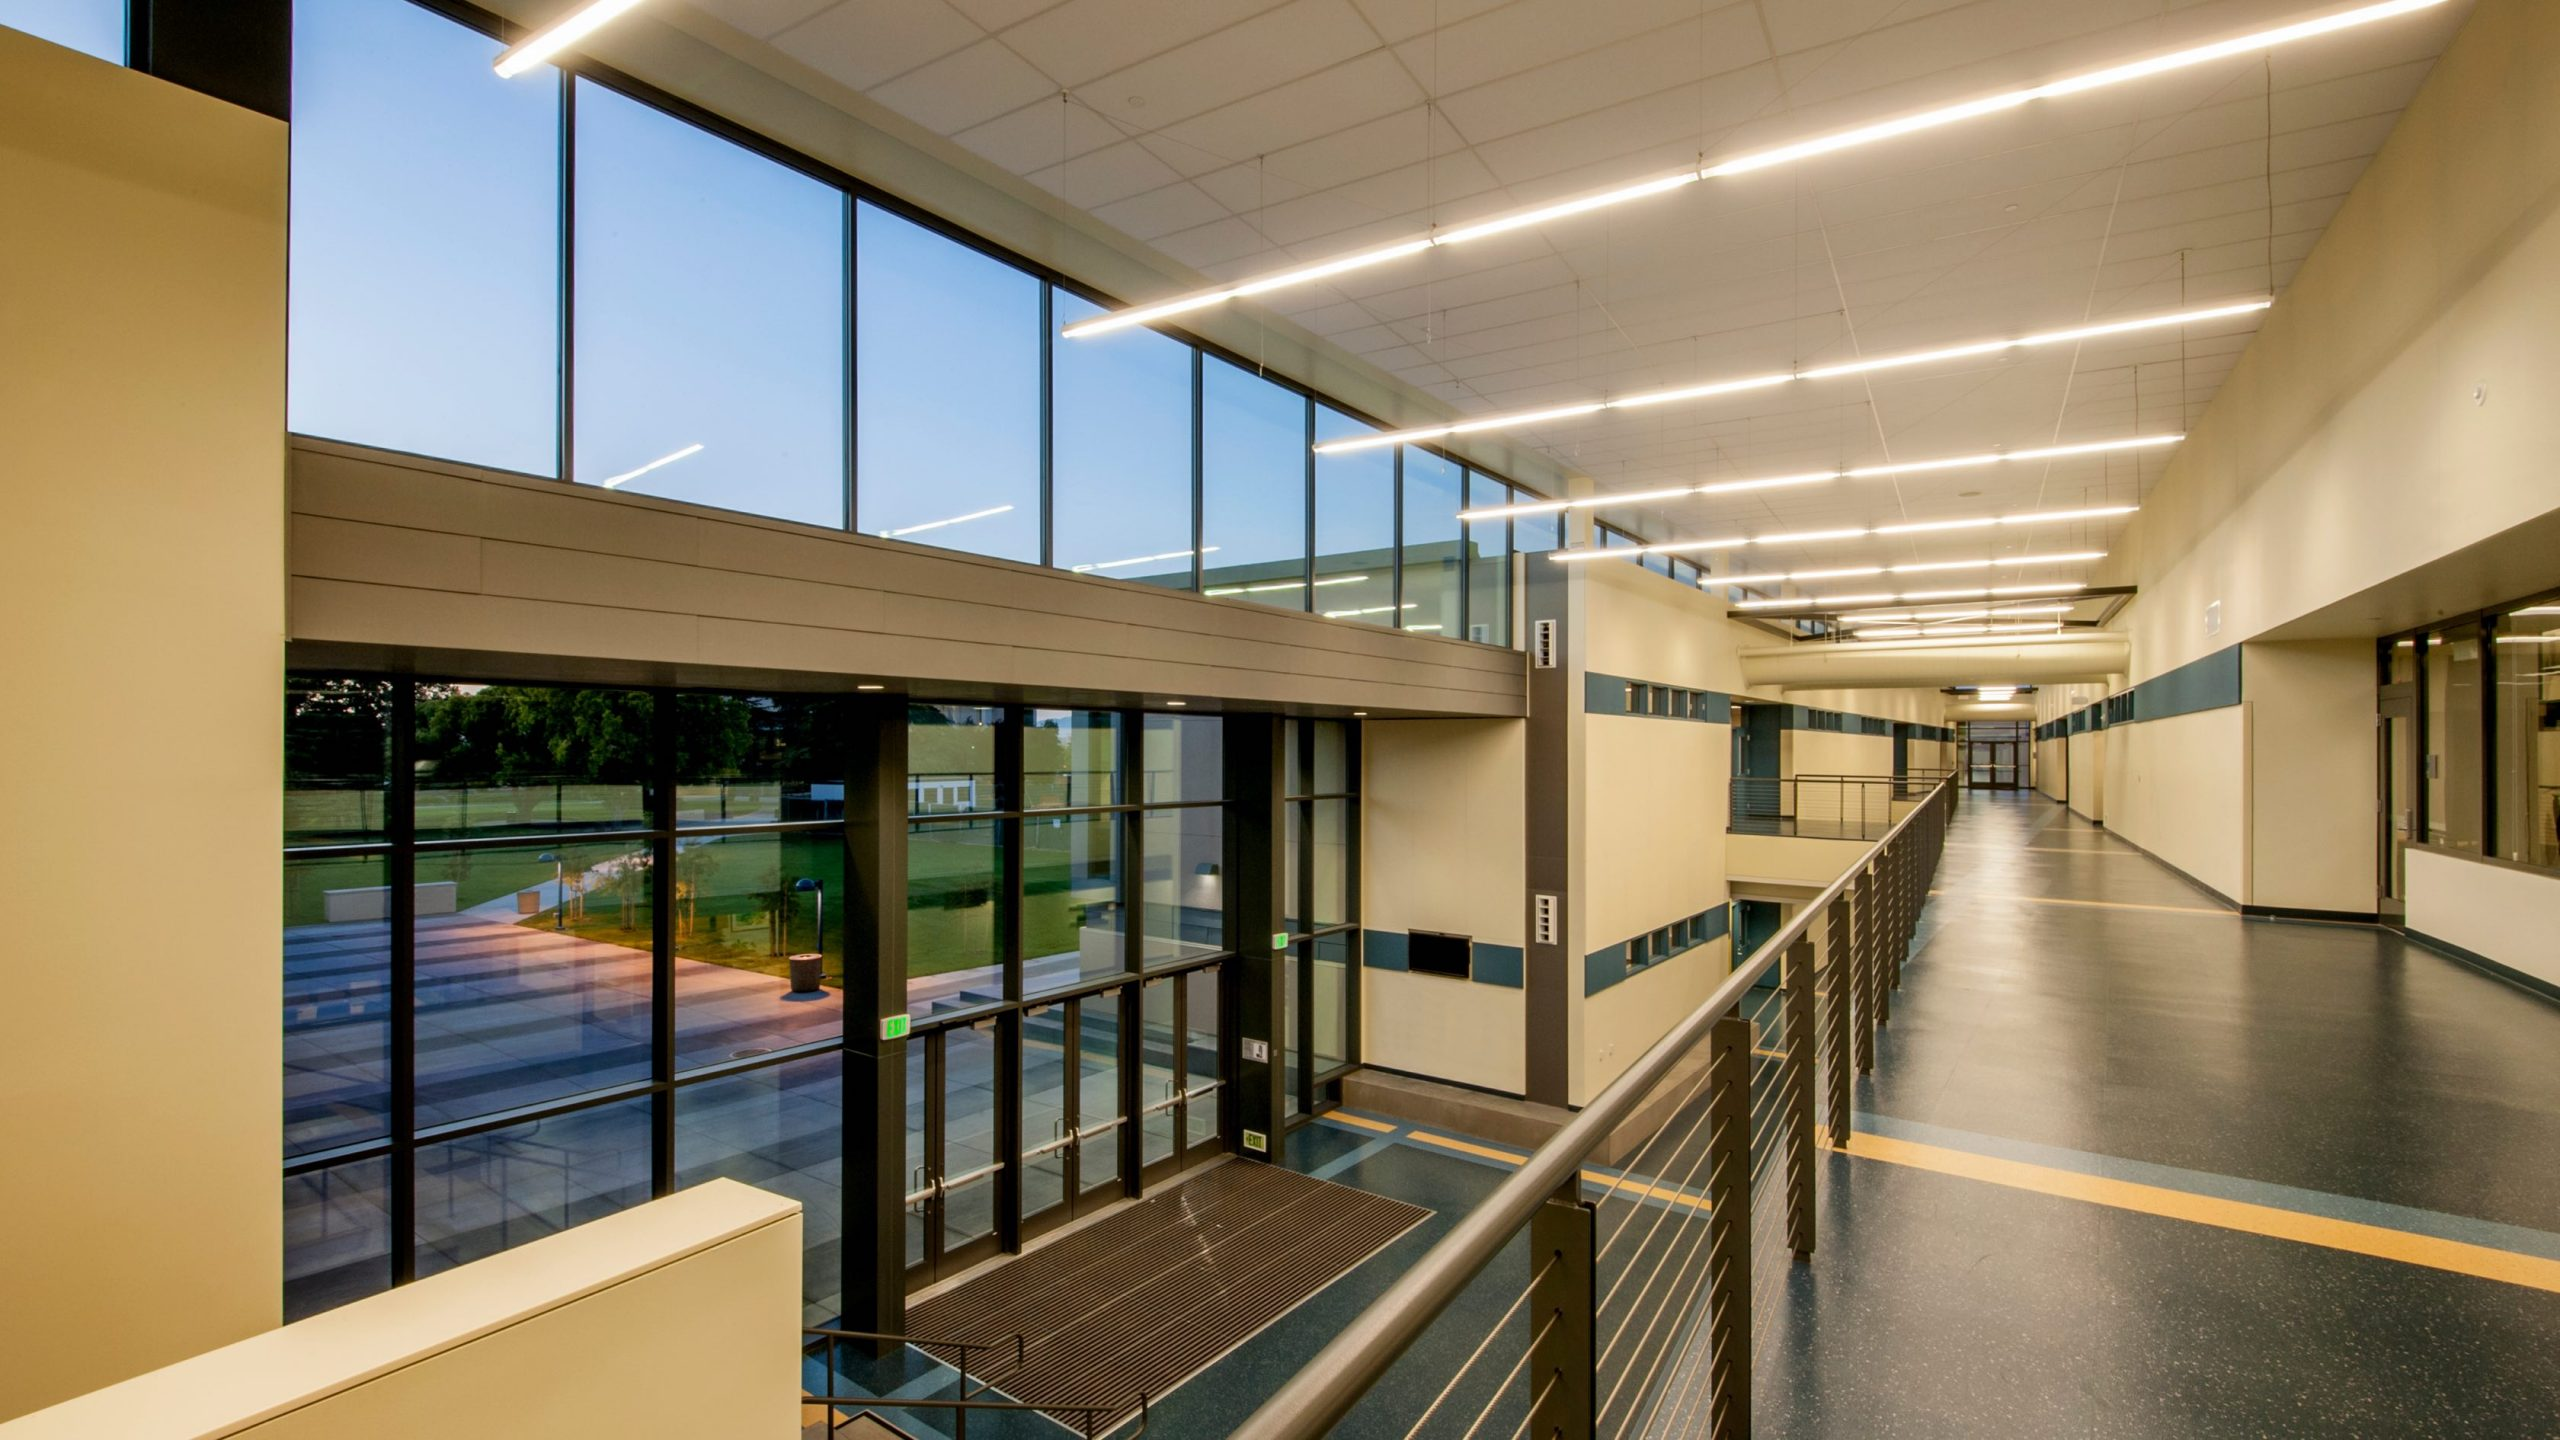 School Security Upgrades Addressed By Campus Security Magazine - Safety and Security Window Film in Denver, Colorado